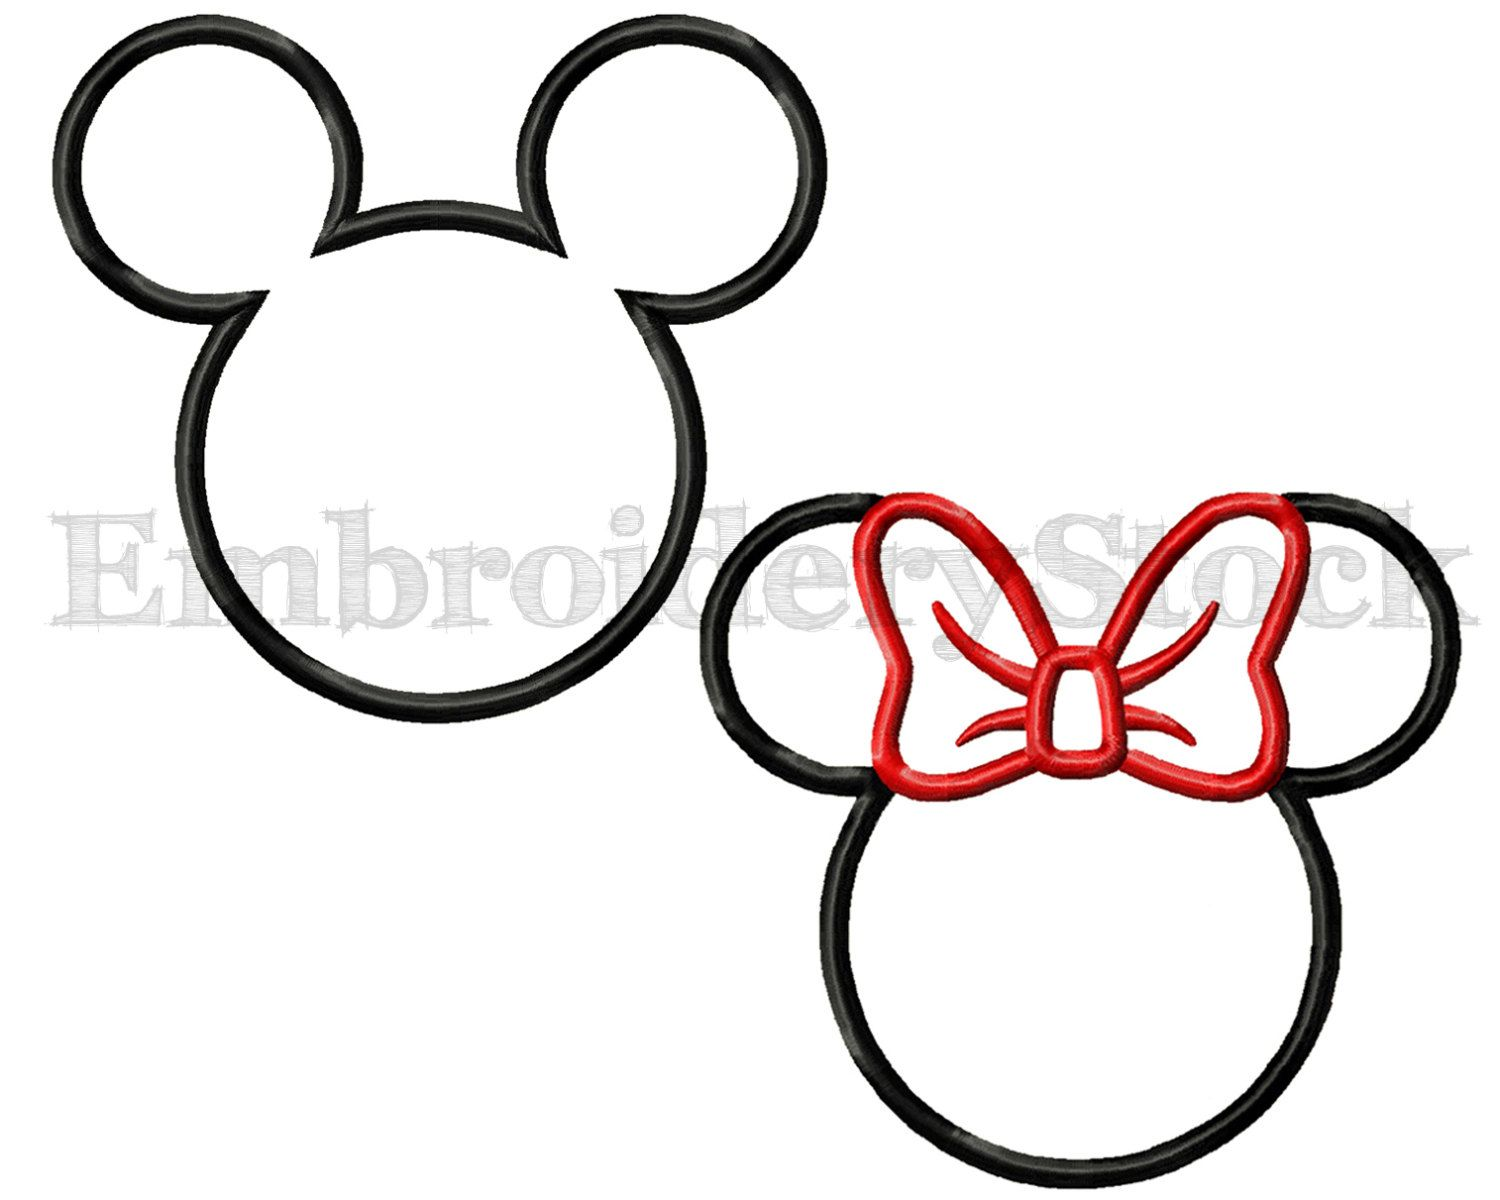 Motif Appliqué Thermocollant Couple Mickey Et Minnie